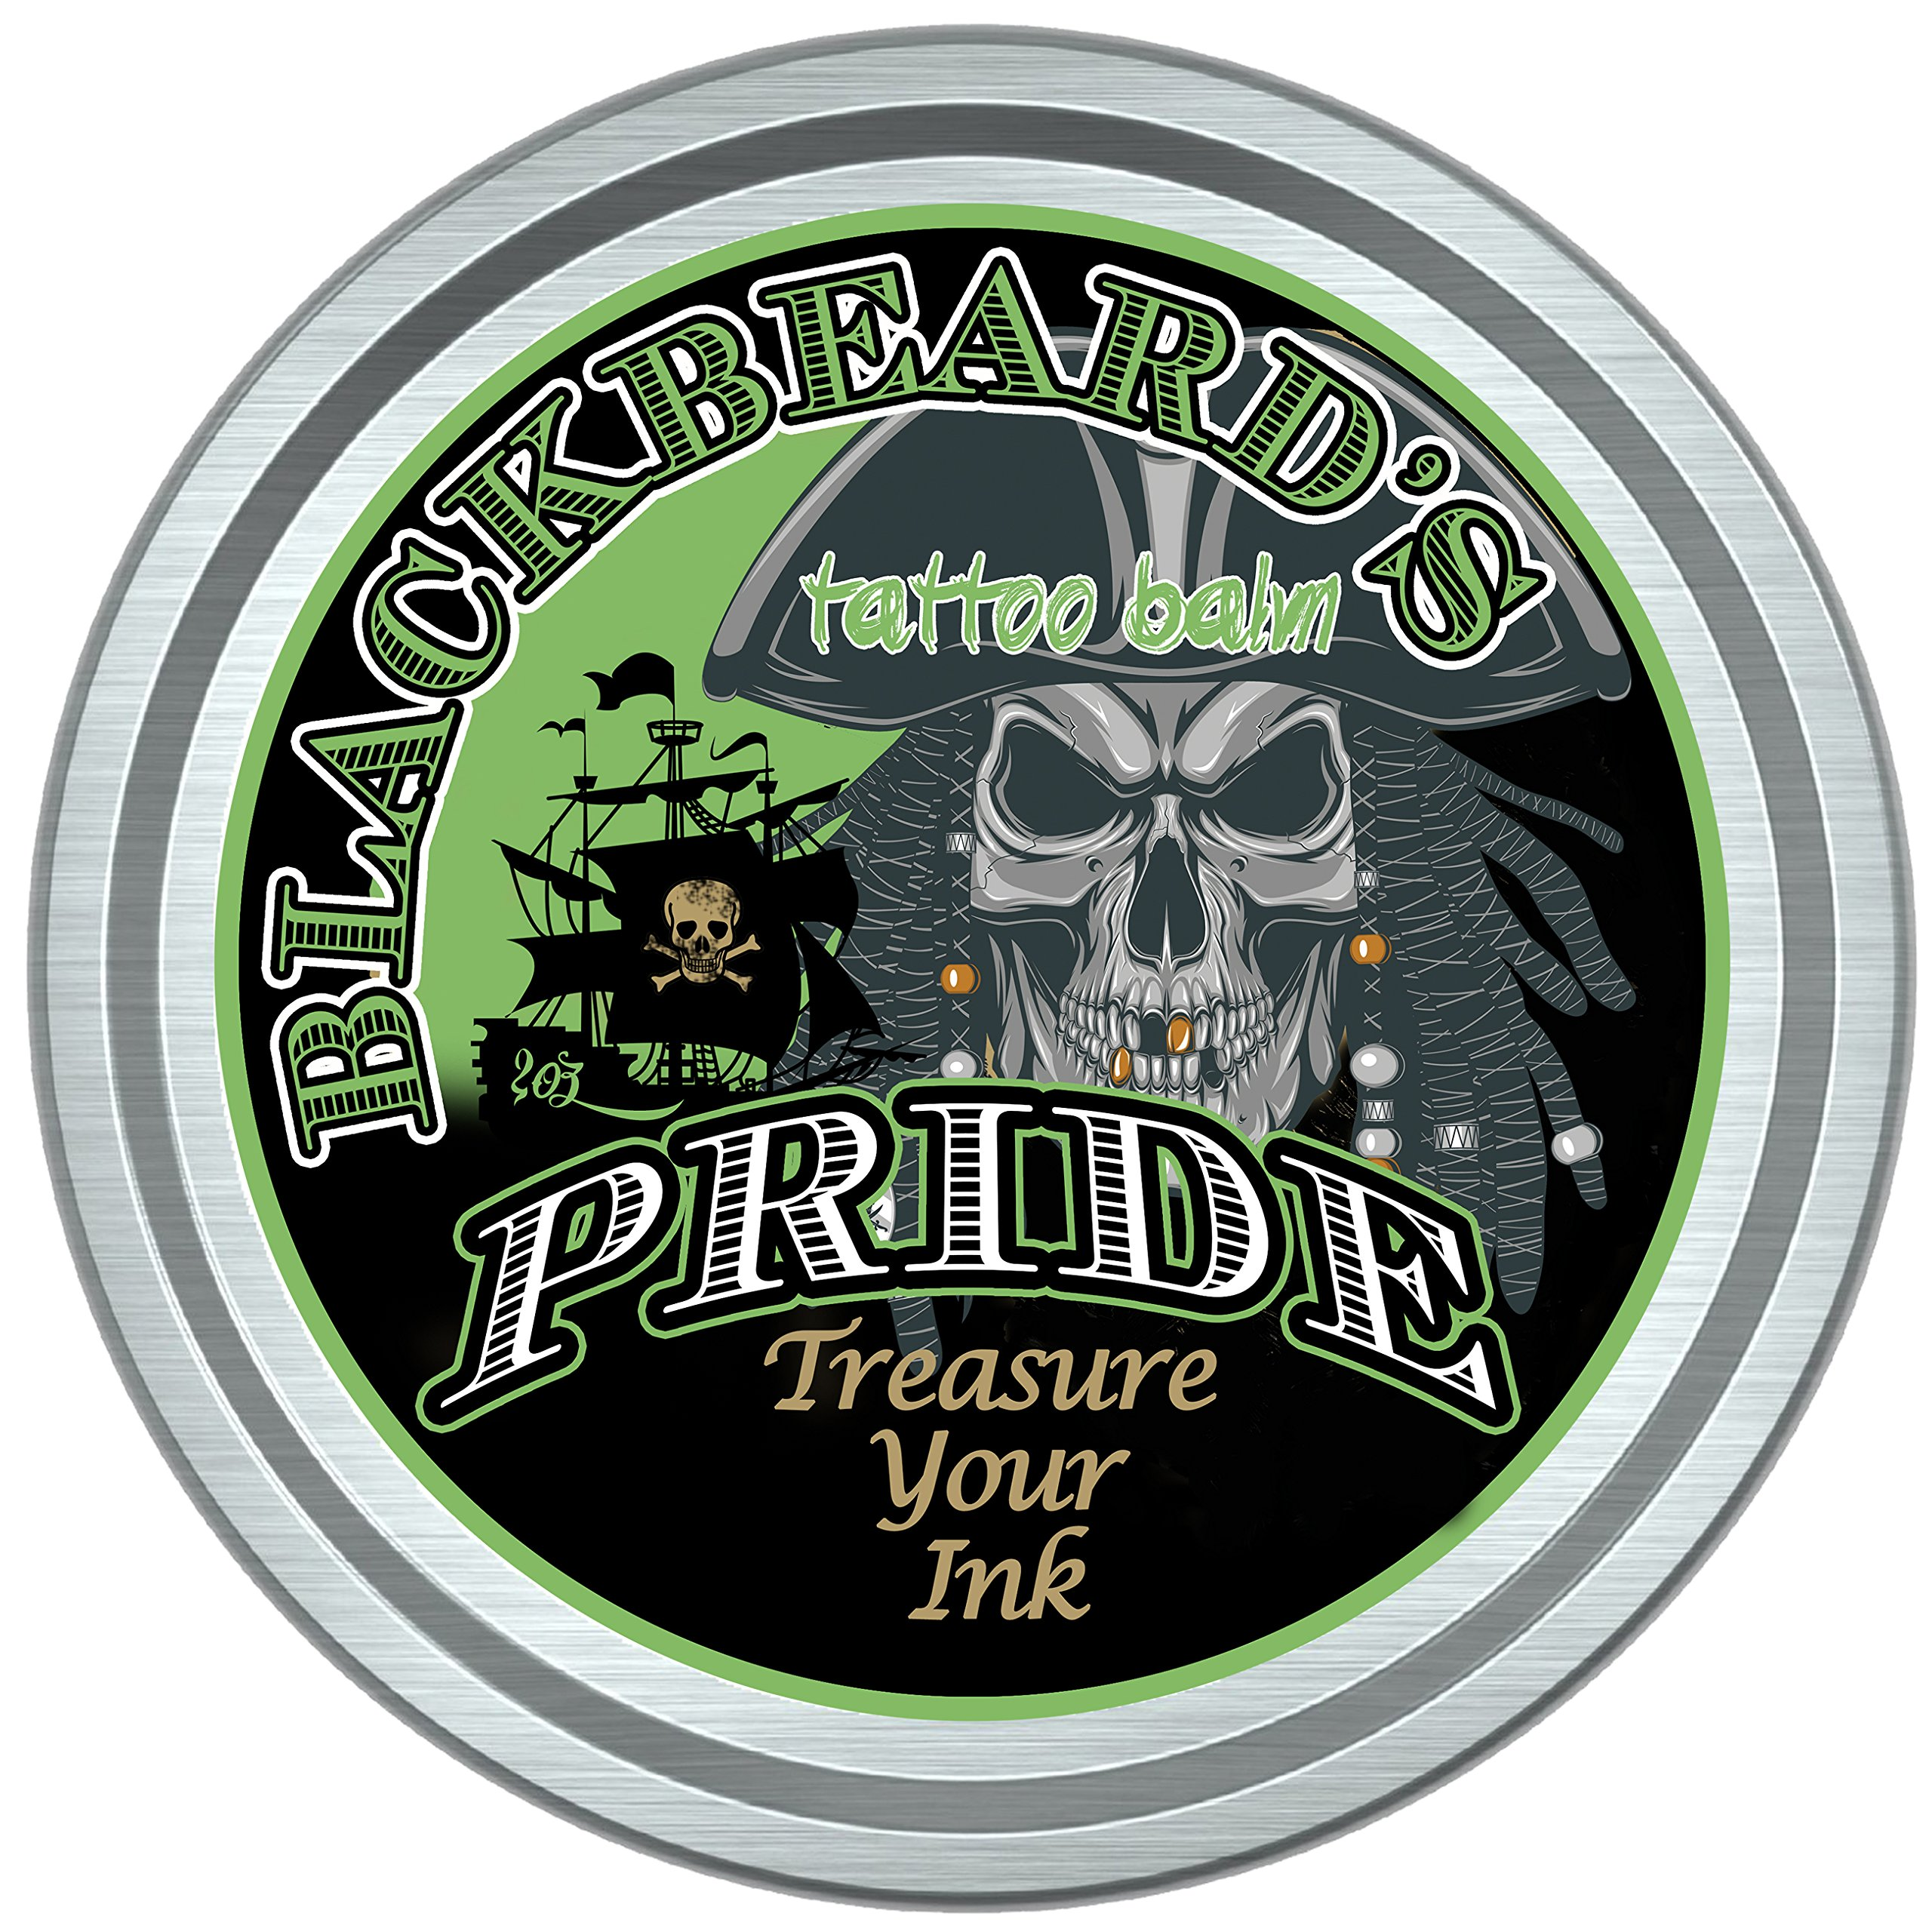 Blackbeard's Pride Tattoo All natural Before and After care Balm/Salve-Promotes Quick Healing-Revives Old Ink, Moisturizes Skin